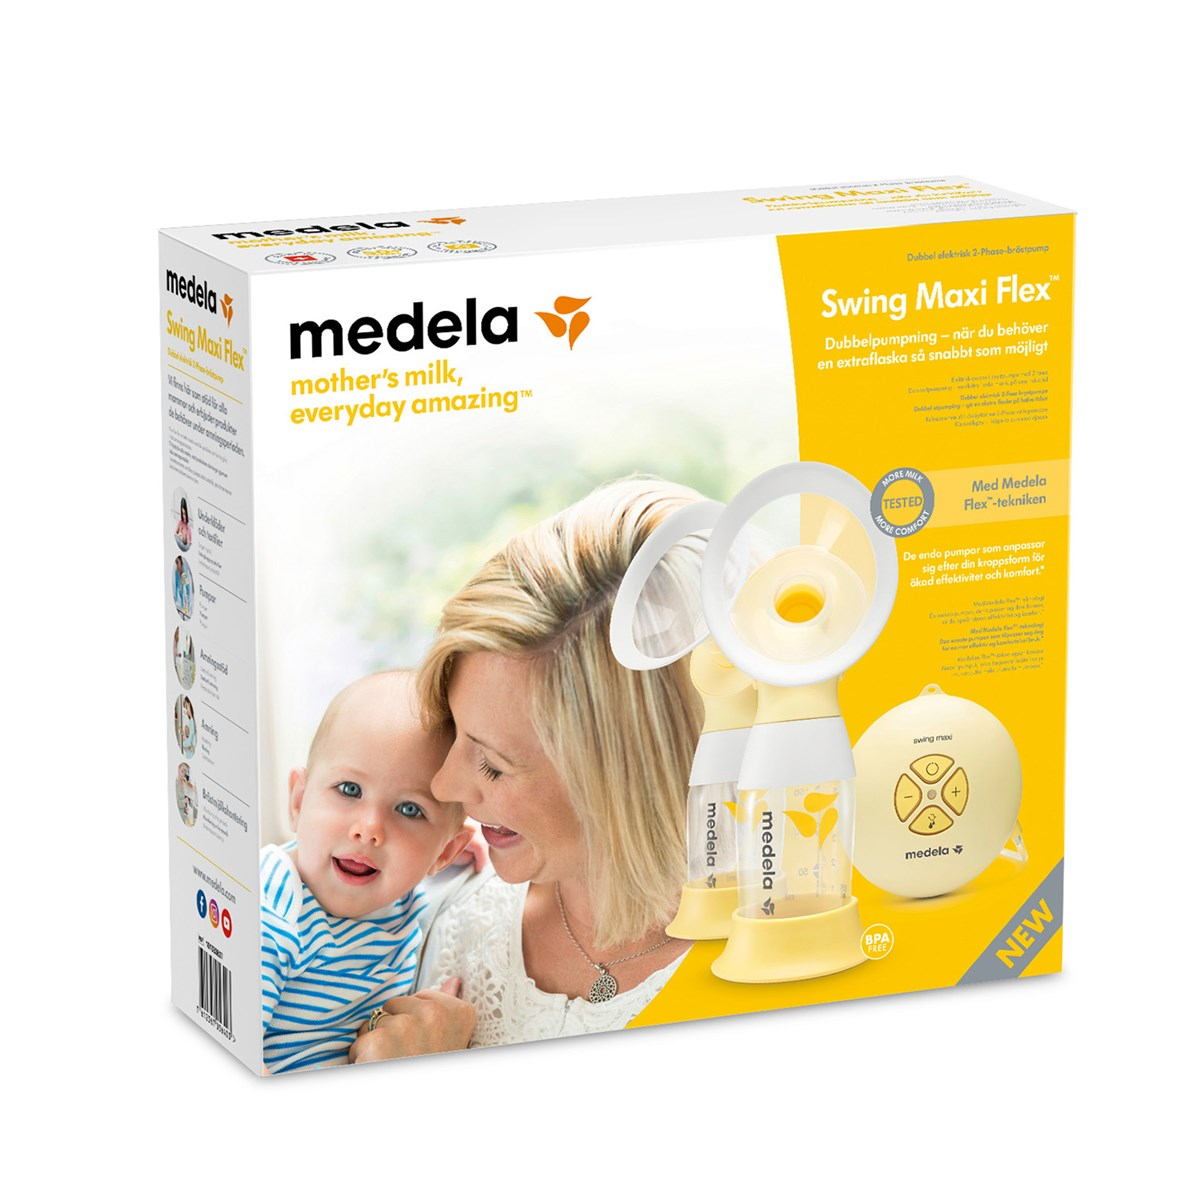 Medela Swing Maxi Flex Double Electric Breast Pump Babyshop Com